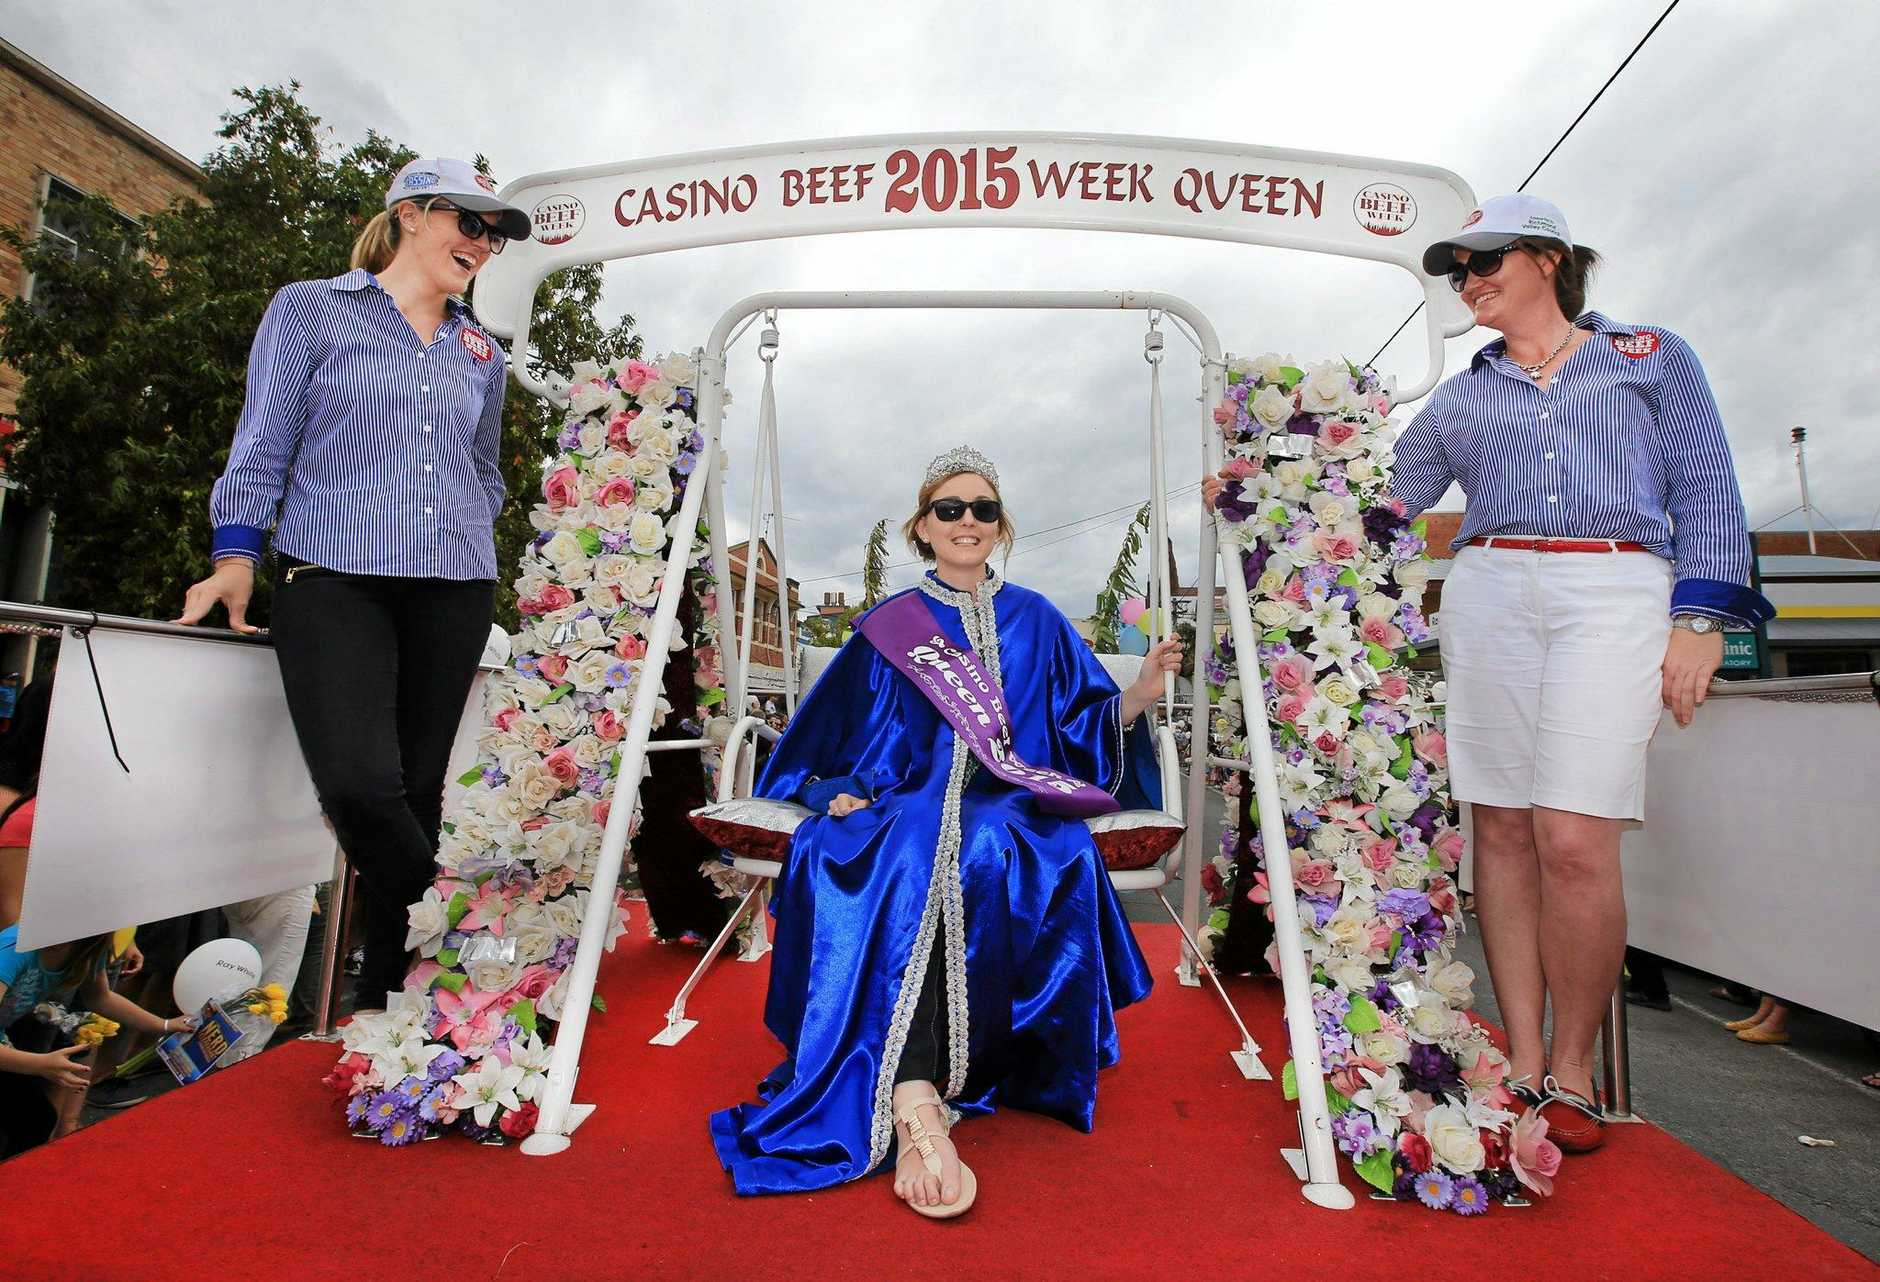 The Queen of Casino Beef Week 2015 Miss Anna Imeson. Photo: Scott Powick / Daily News